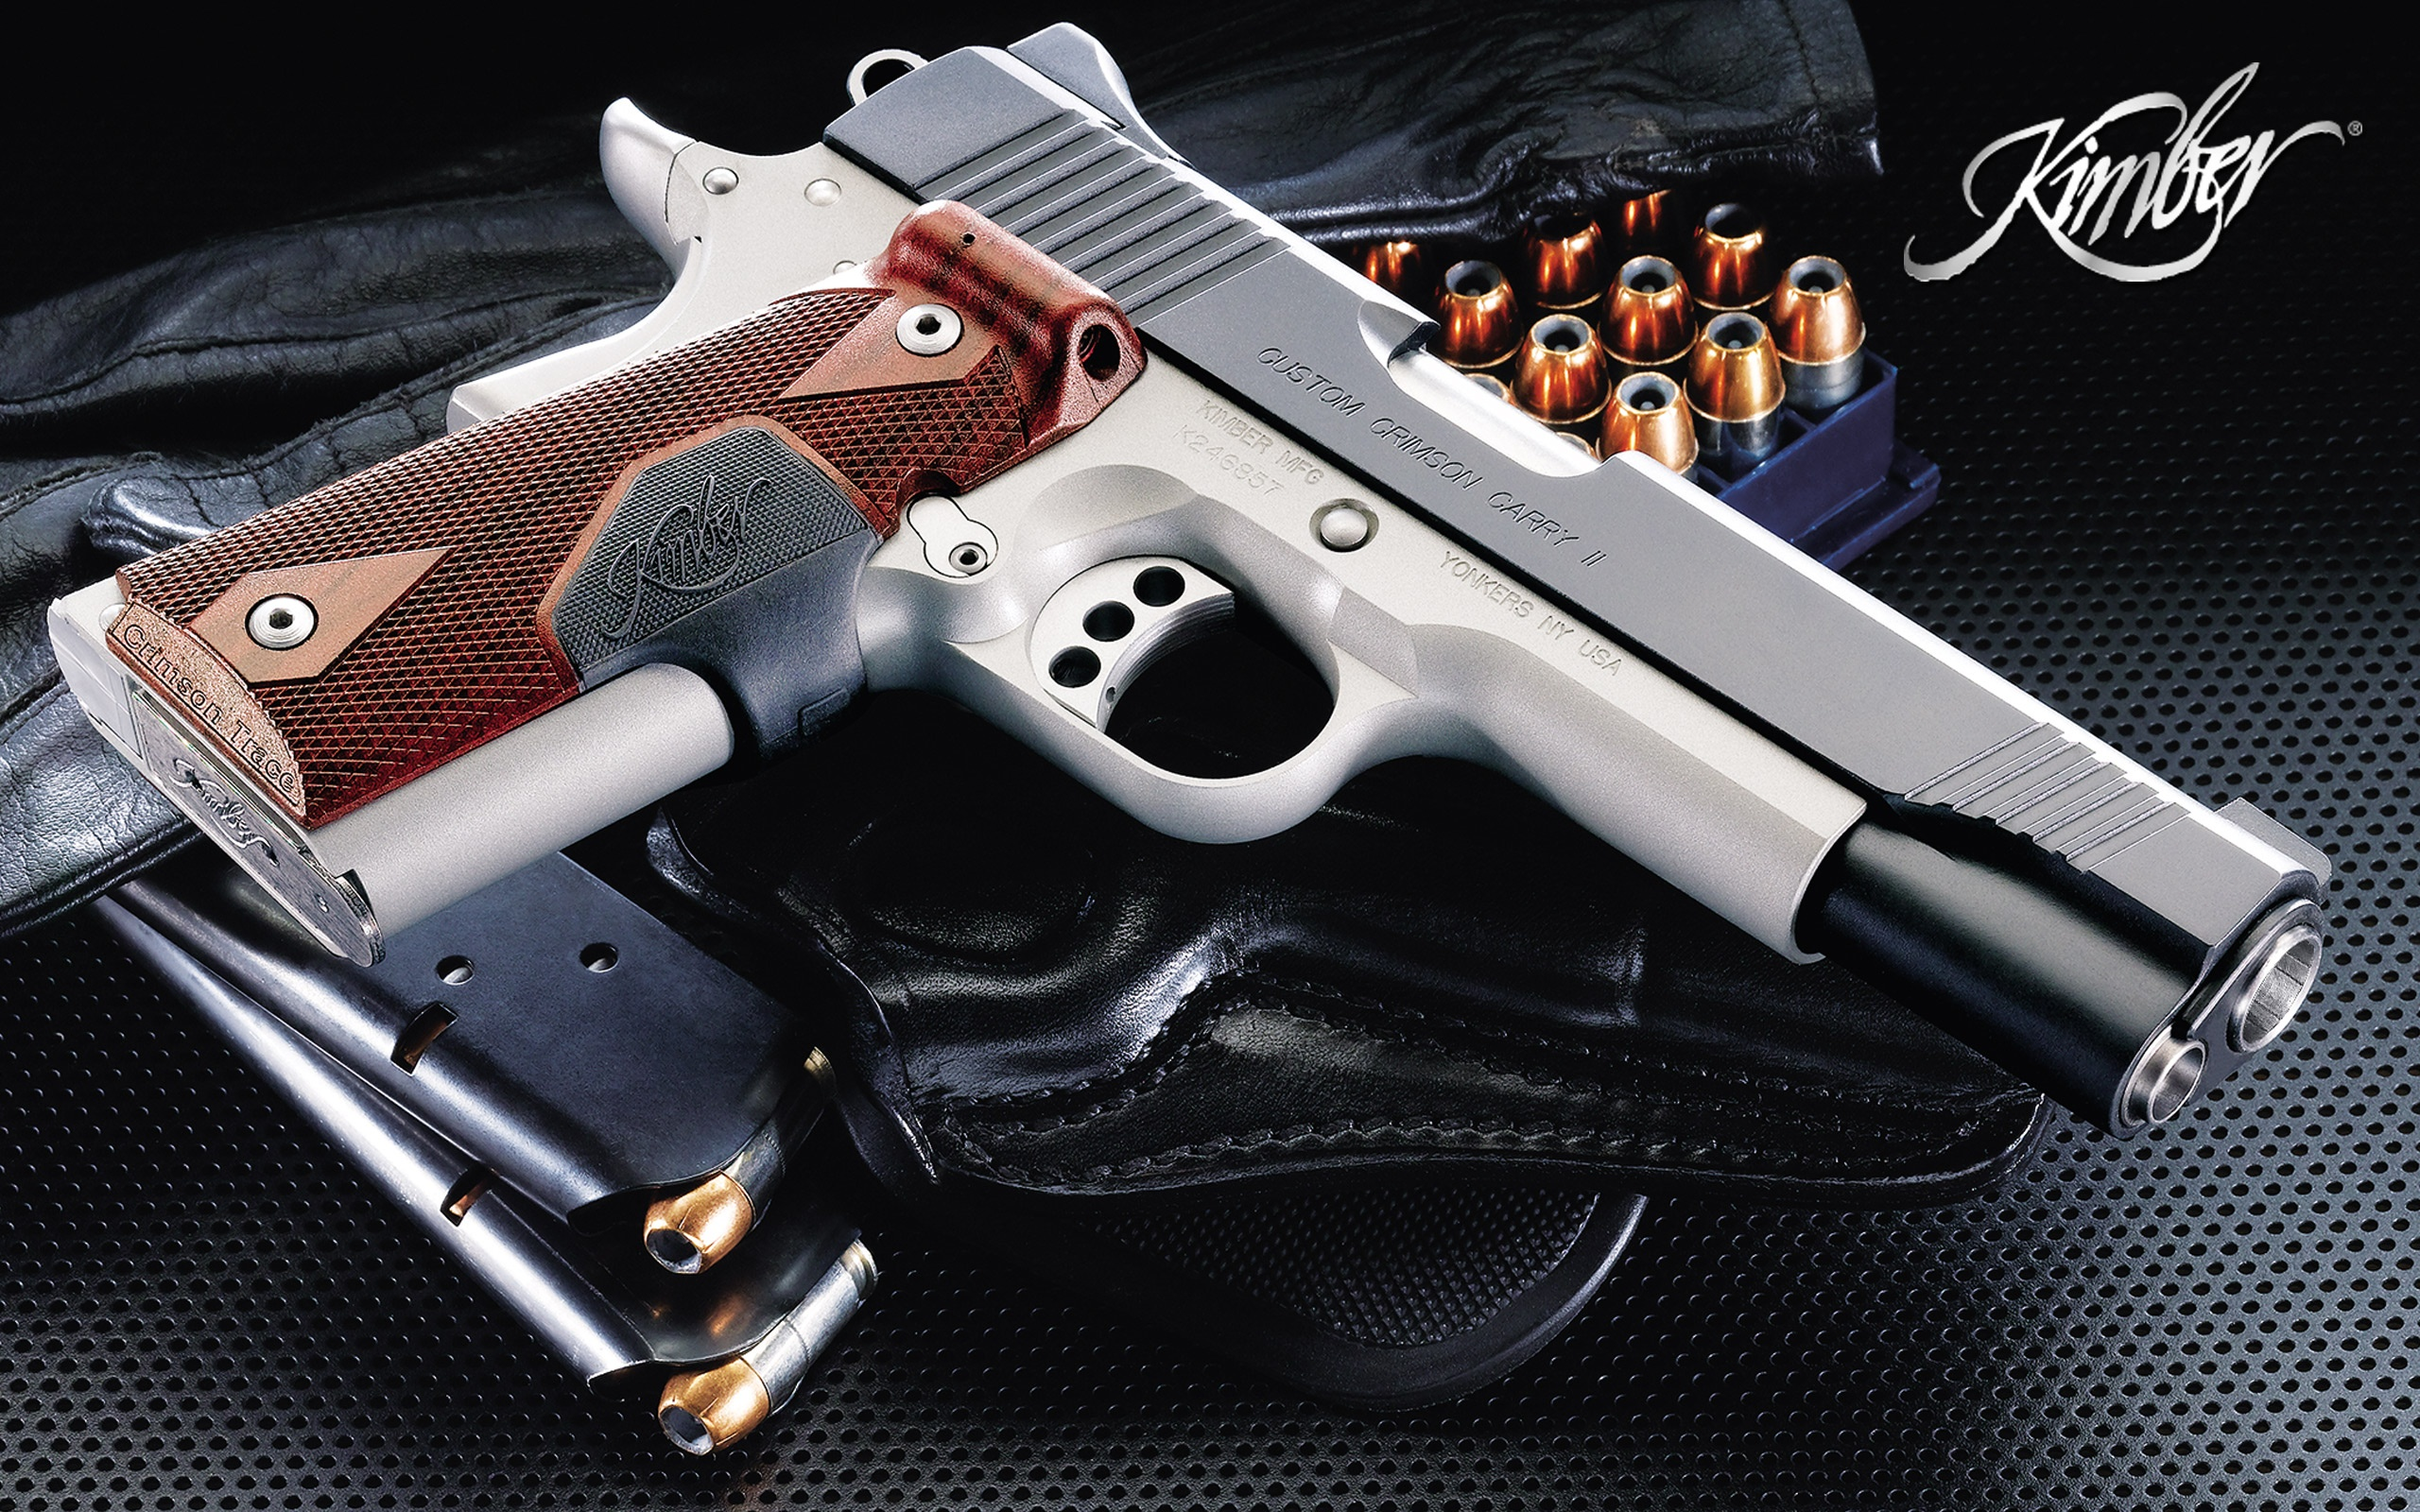 15 Kimber Pistol HD Wallpapers